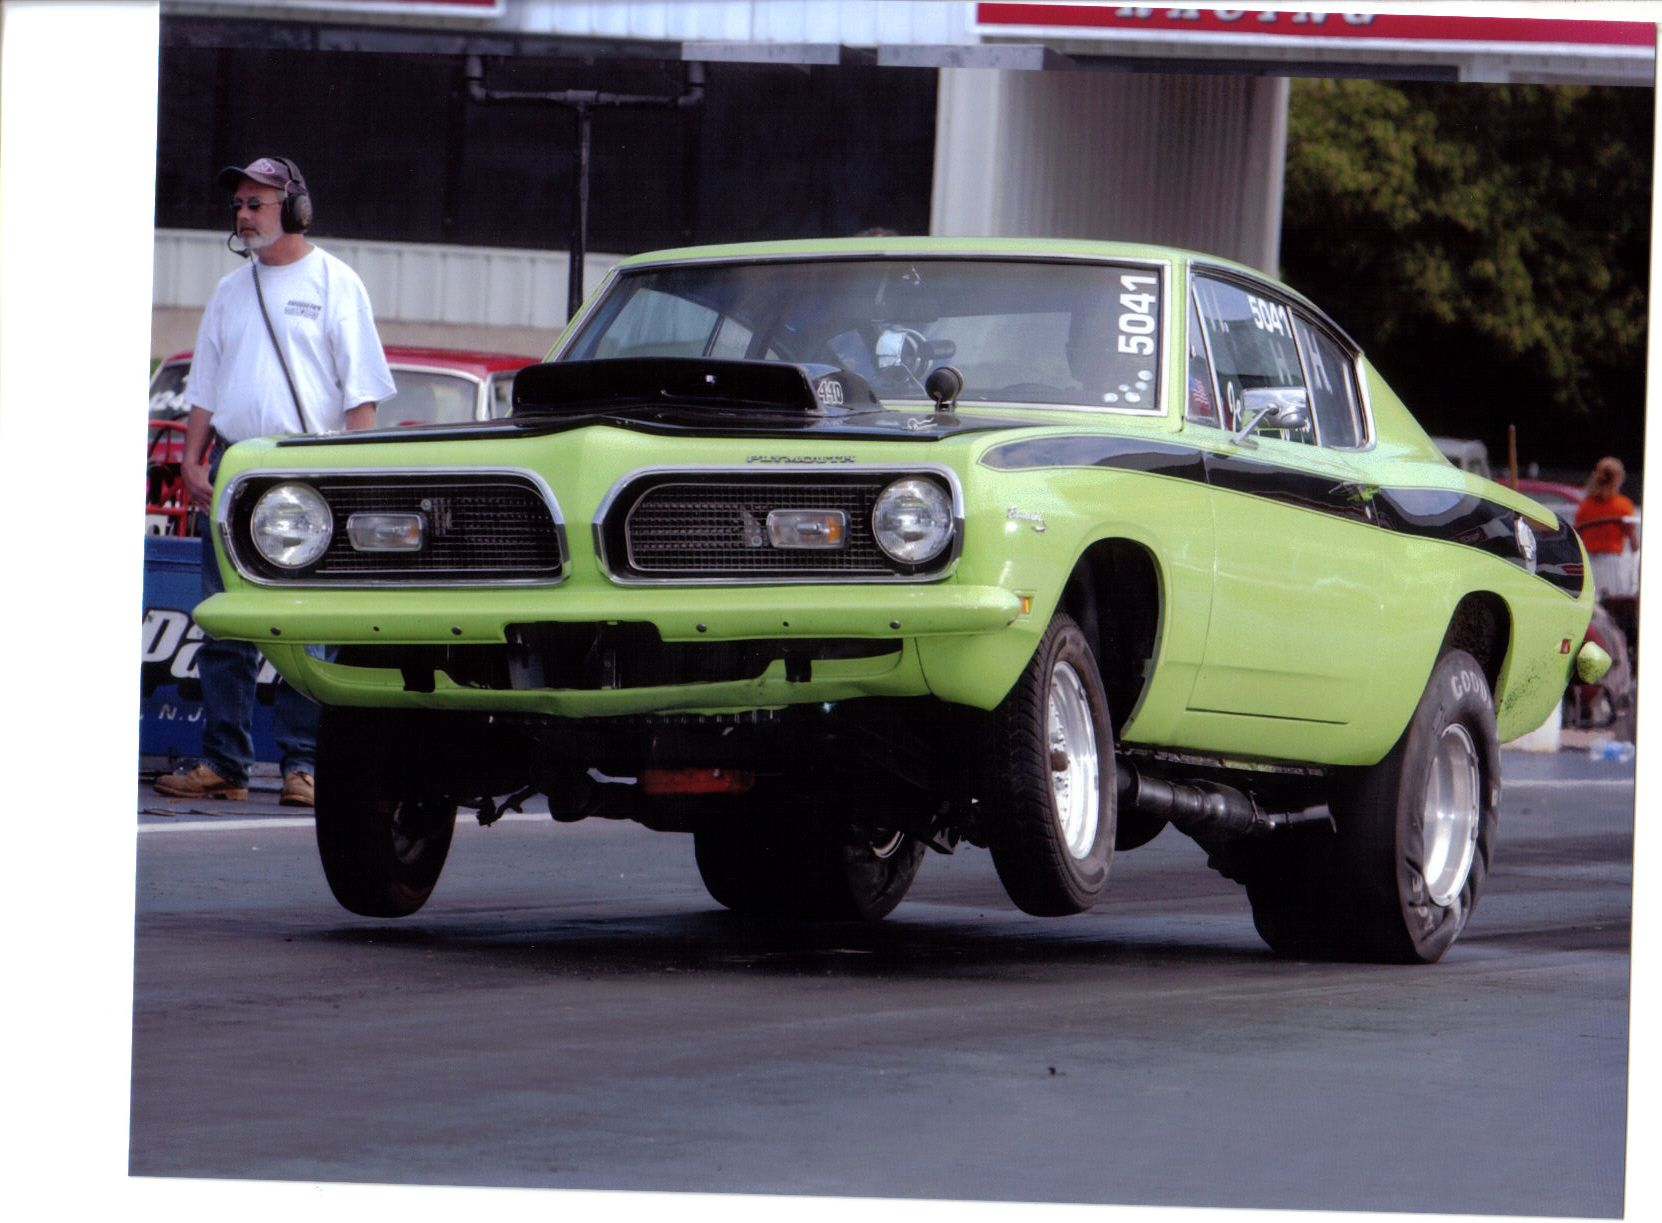 Plymouth Barracuda. View Download Wallpaper. 1662x1223. Comments